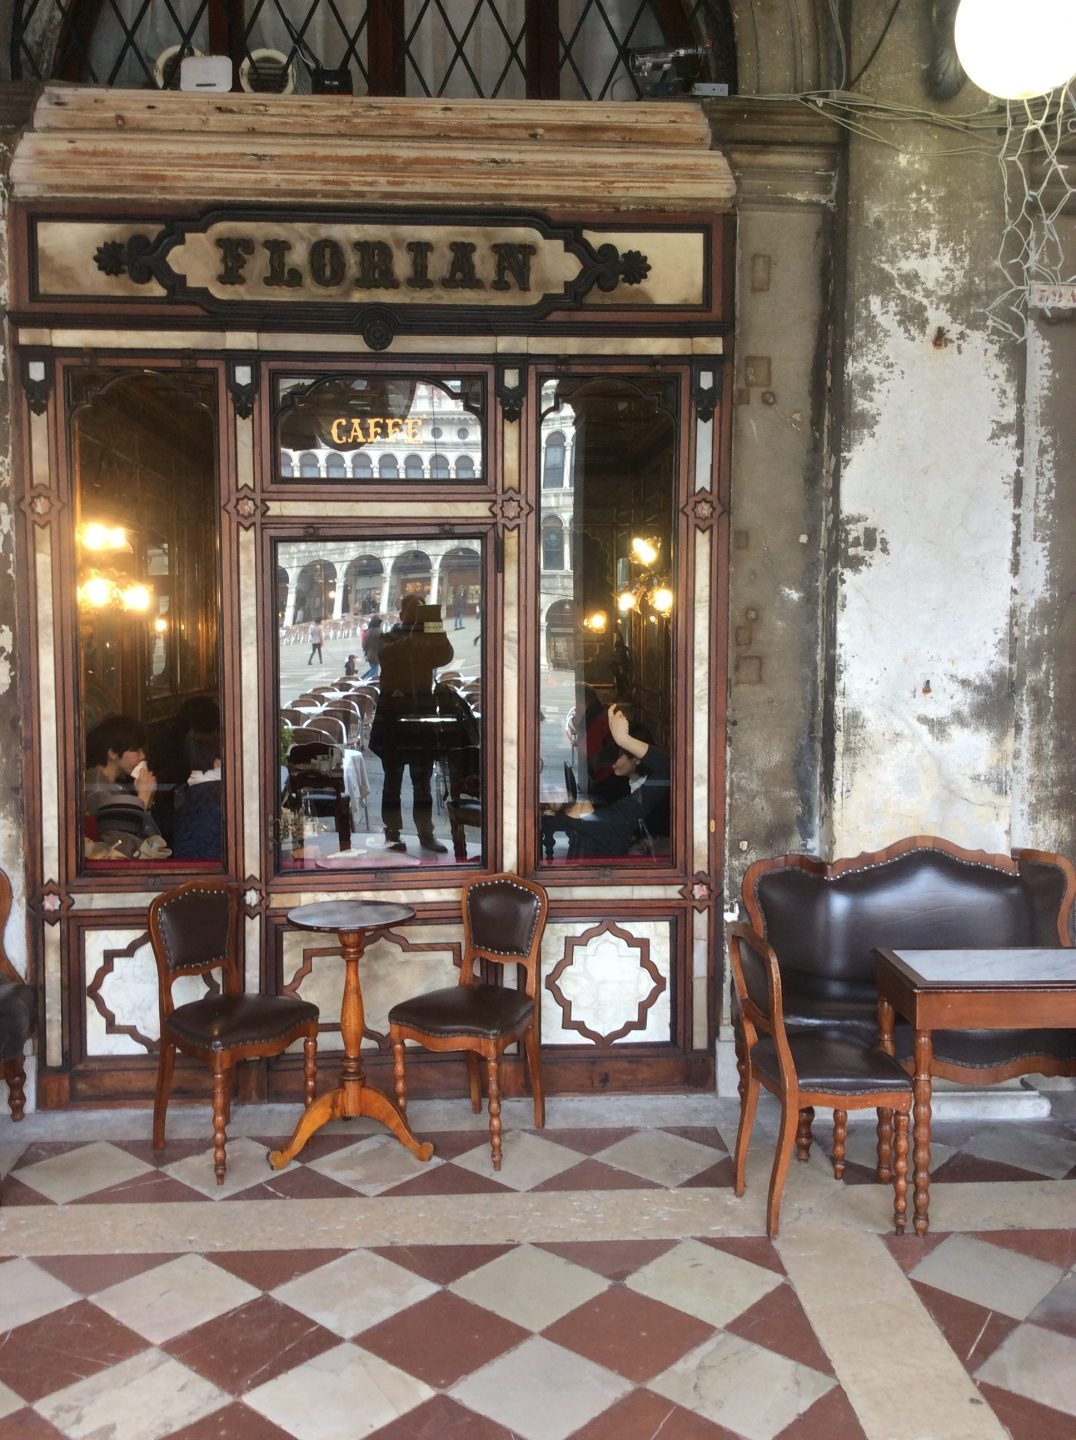 Caffe Florian seen from exterior in Piazza San Marco, Venice